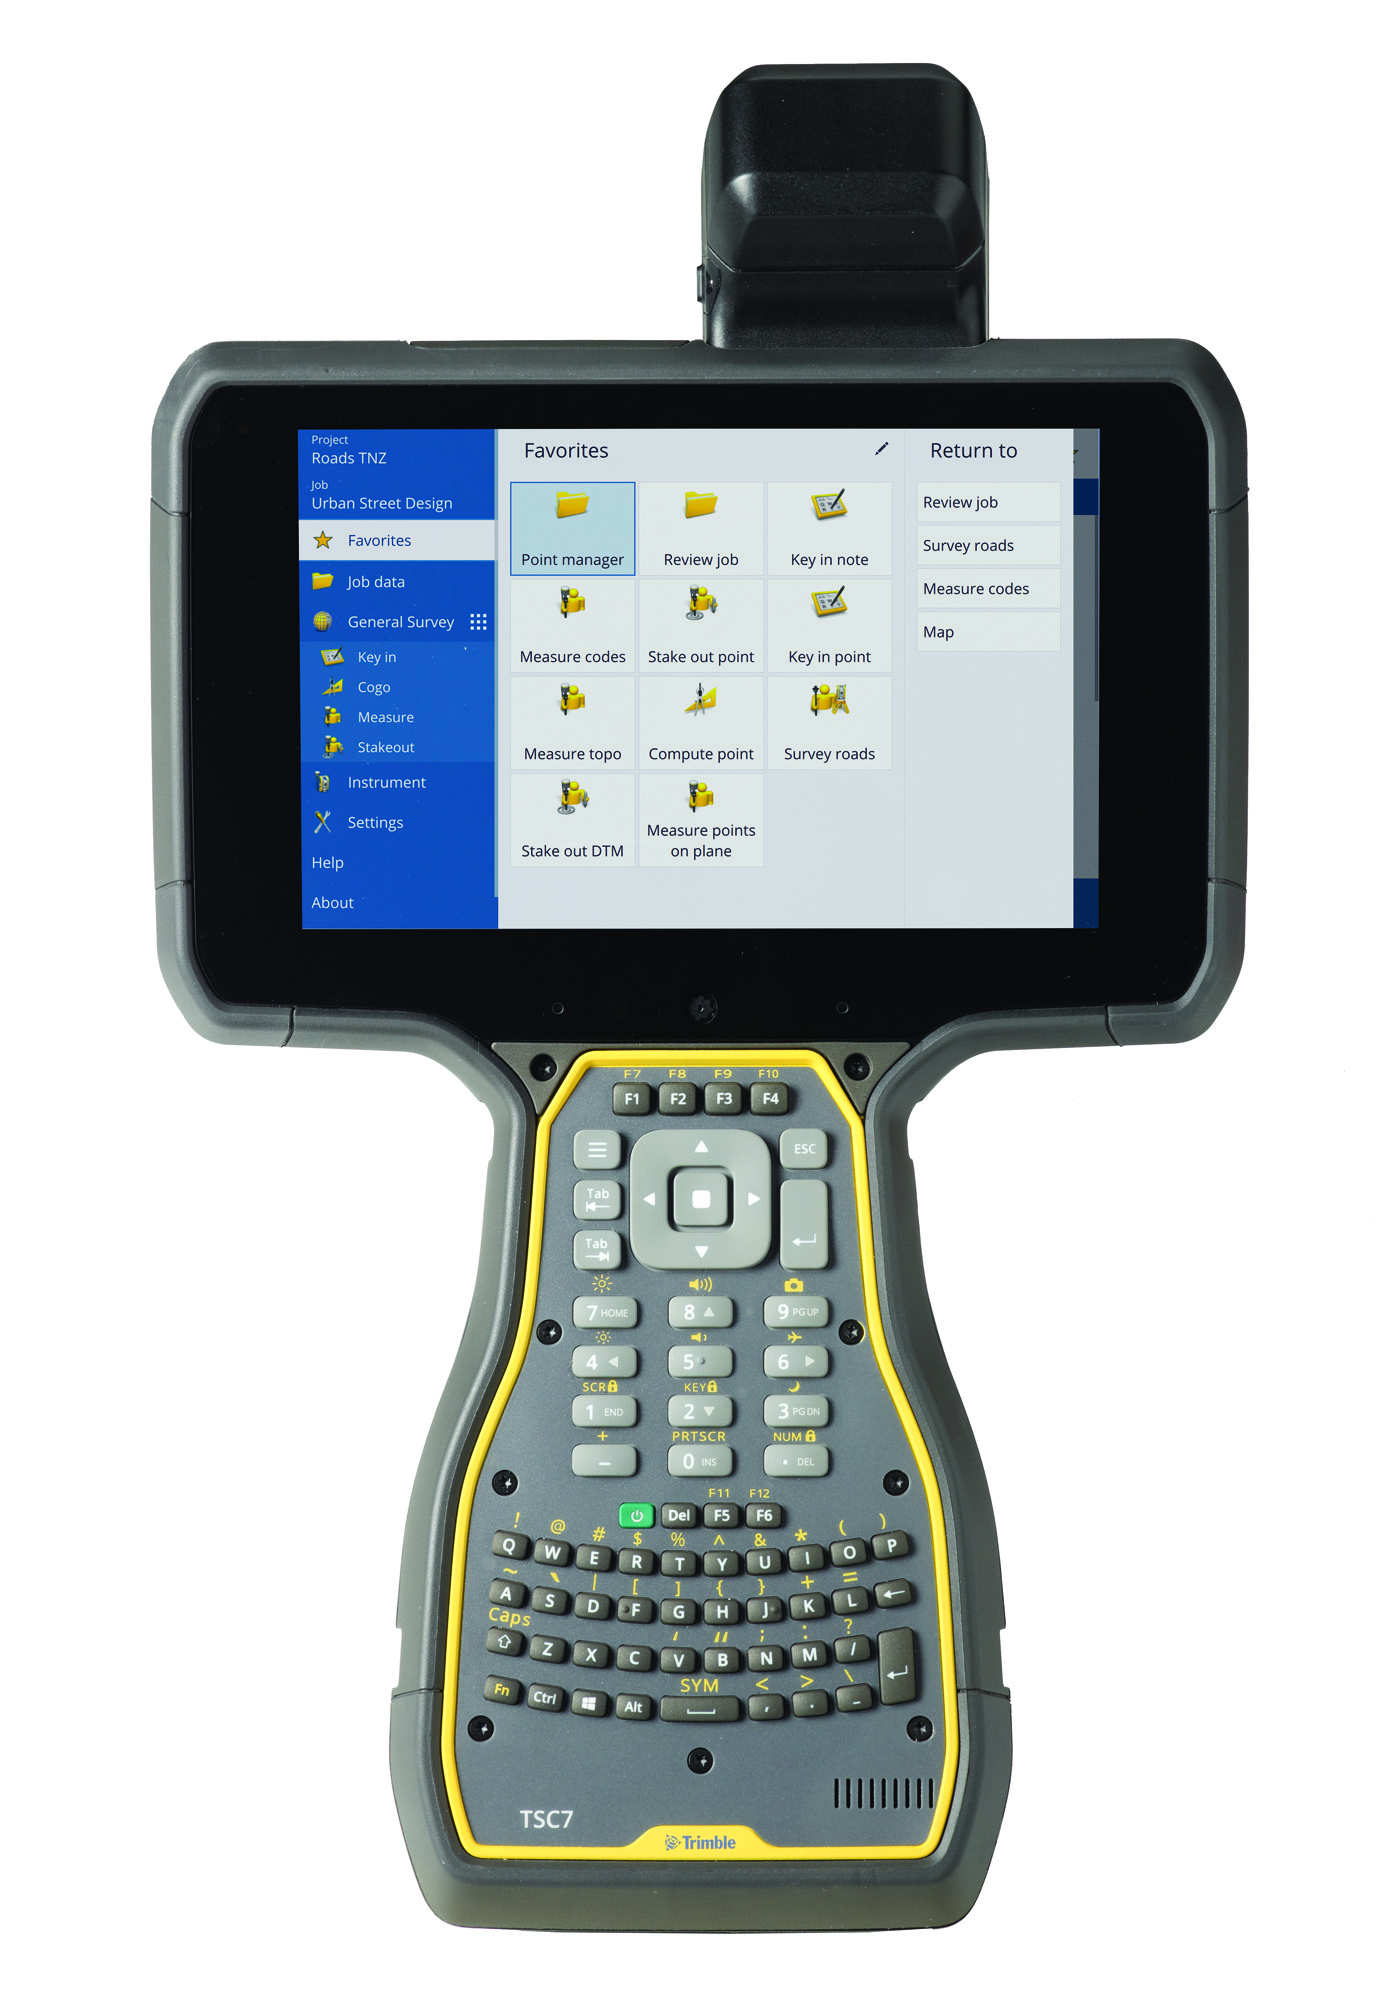 Trimble TSC7 controller - QWERTY keypad, USB/Serial boot, Worldwide region,  Trimble Access